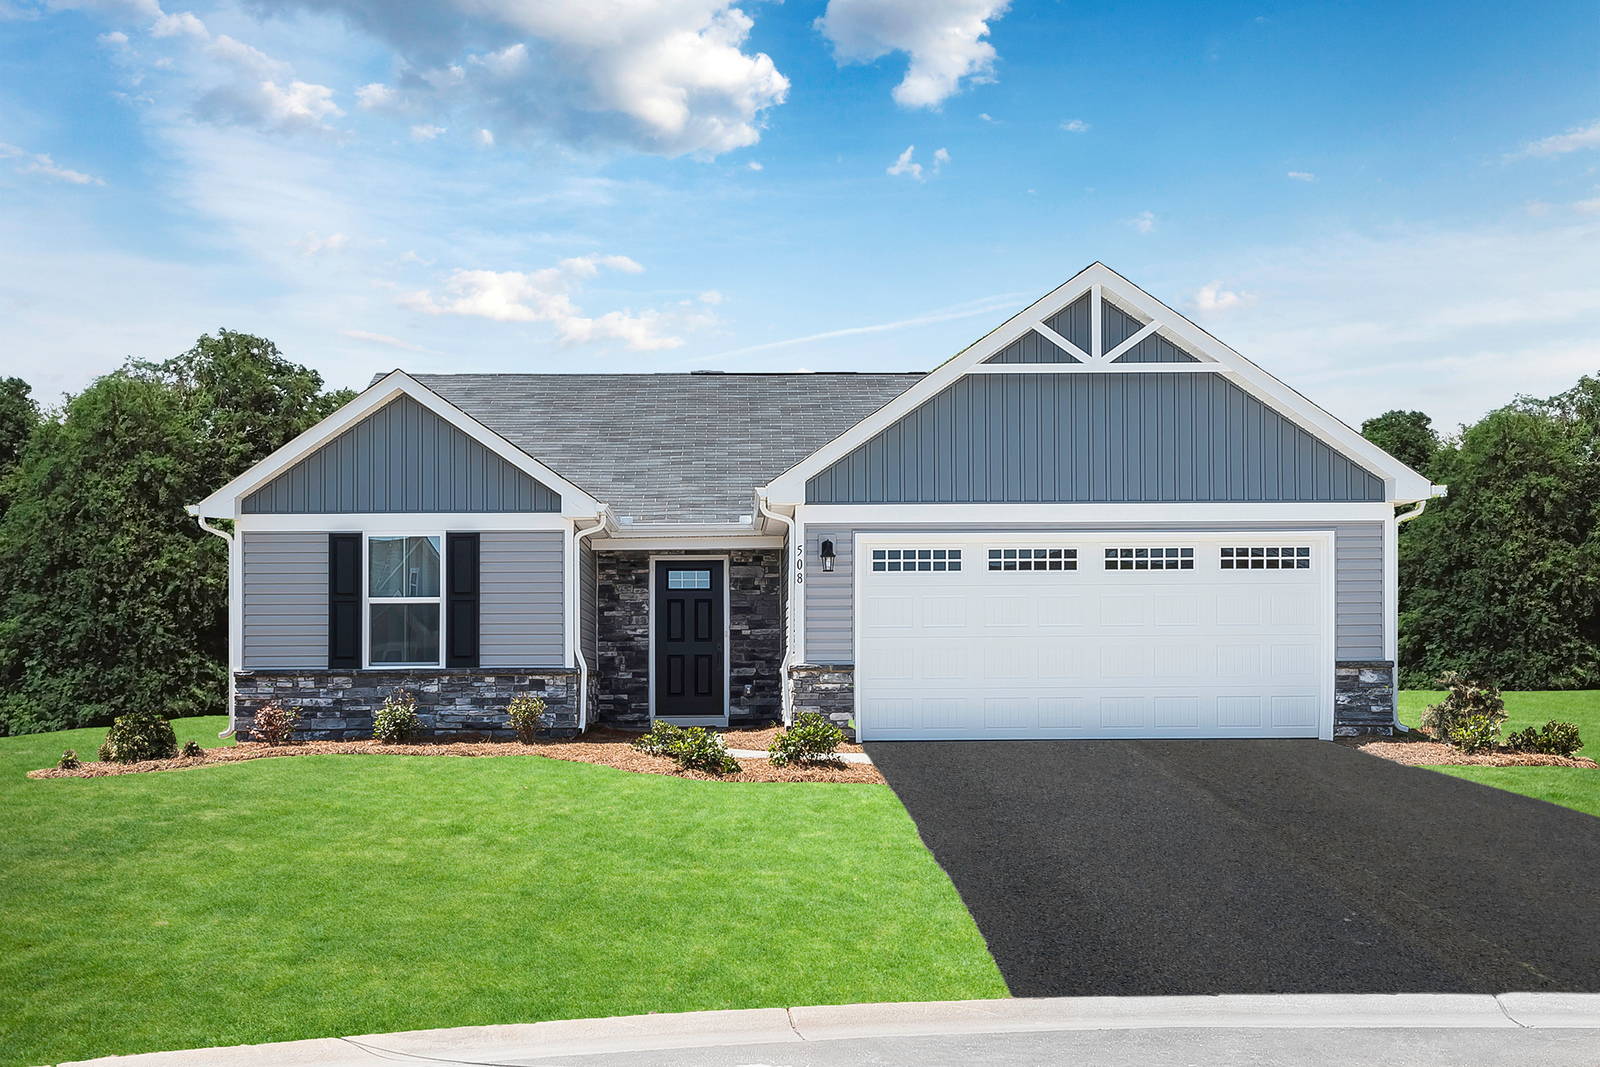 New Homes for sale at Taylor Villas 55+ in Whitehall, PA